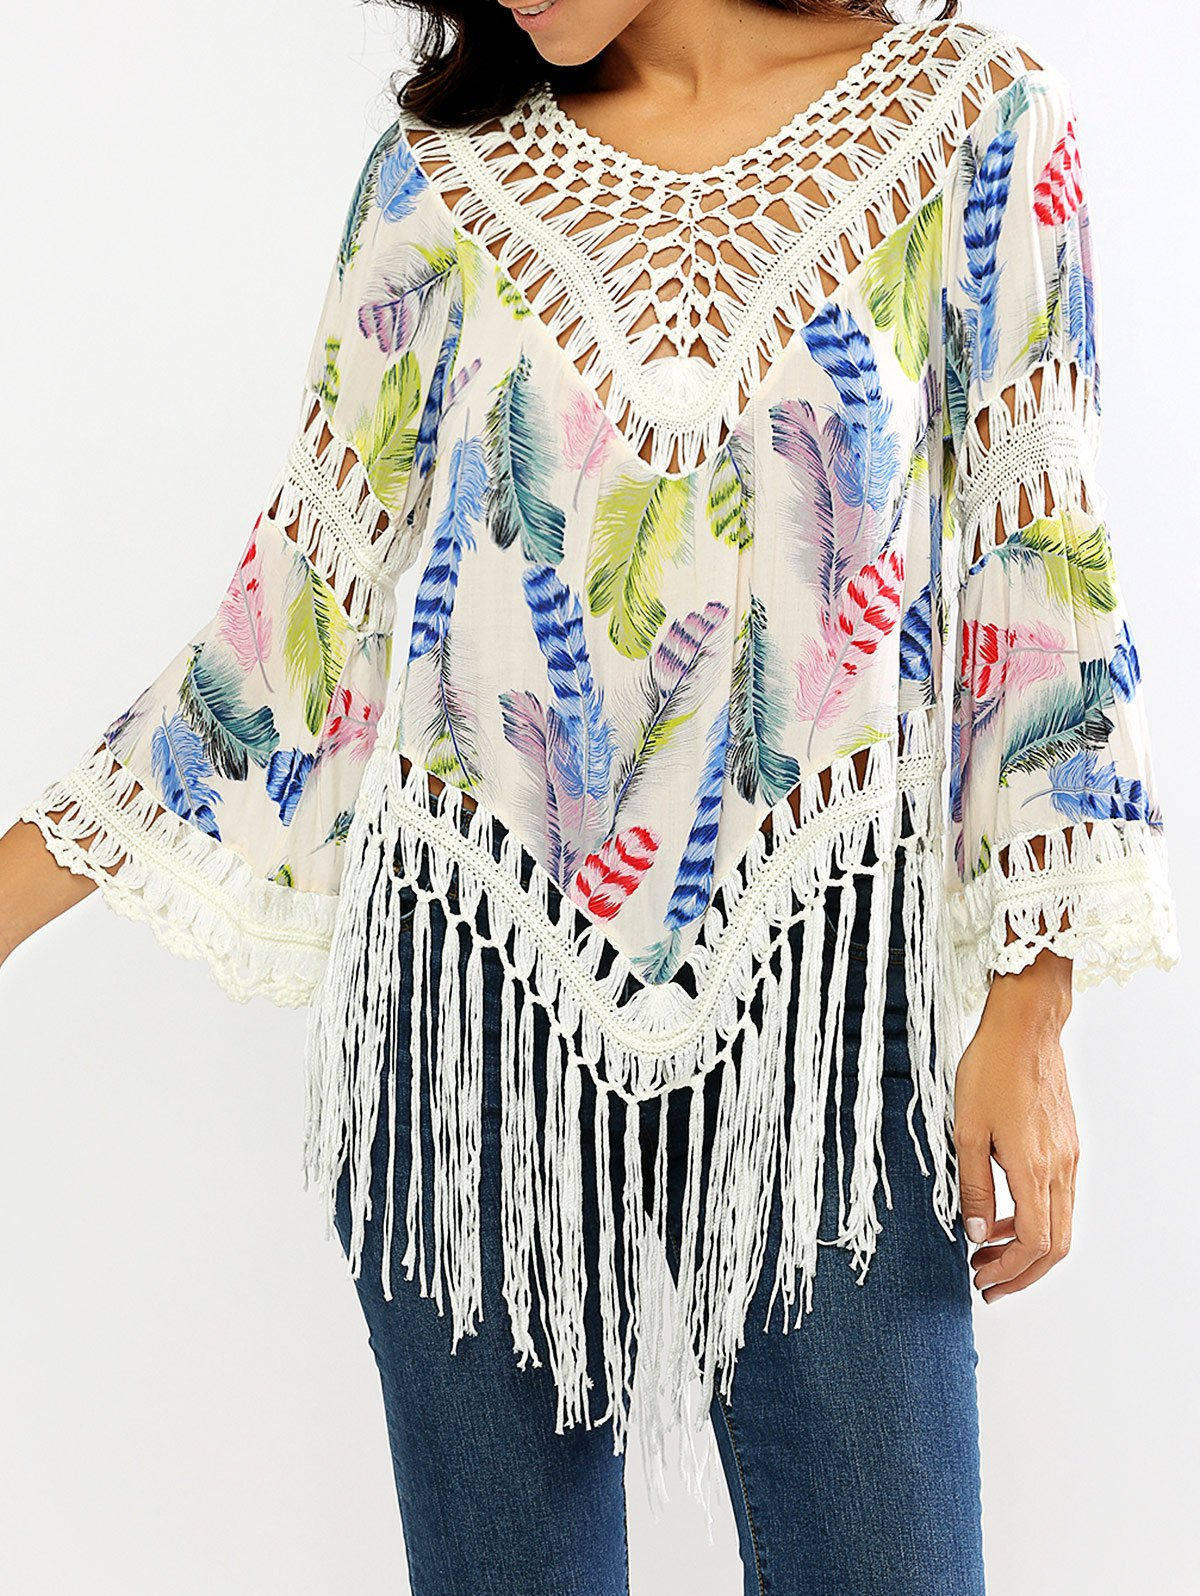 Openwork Feather Print Fringed Blouse